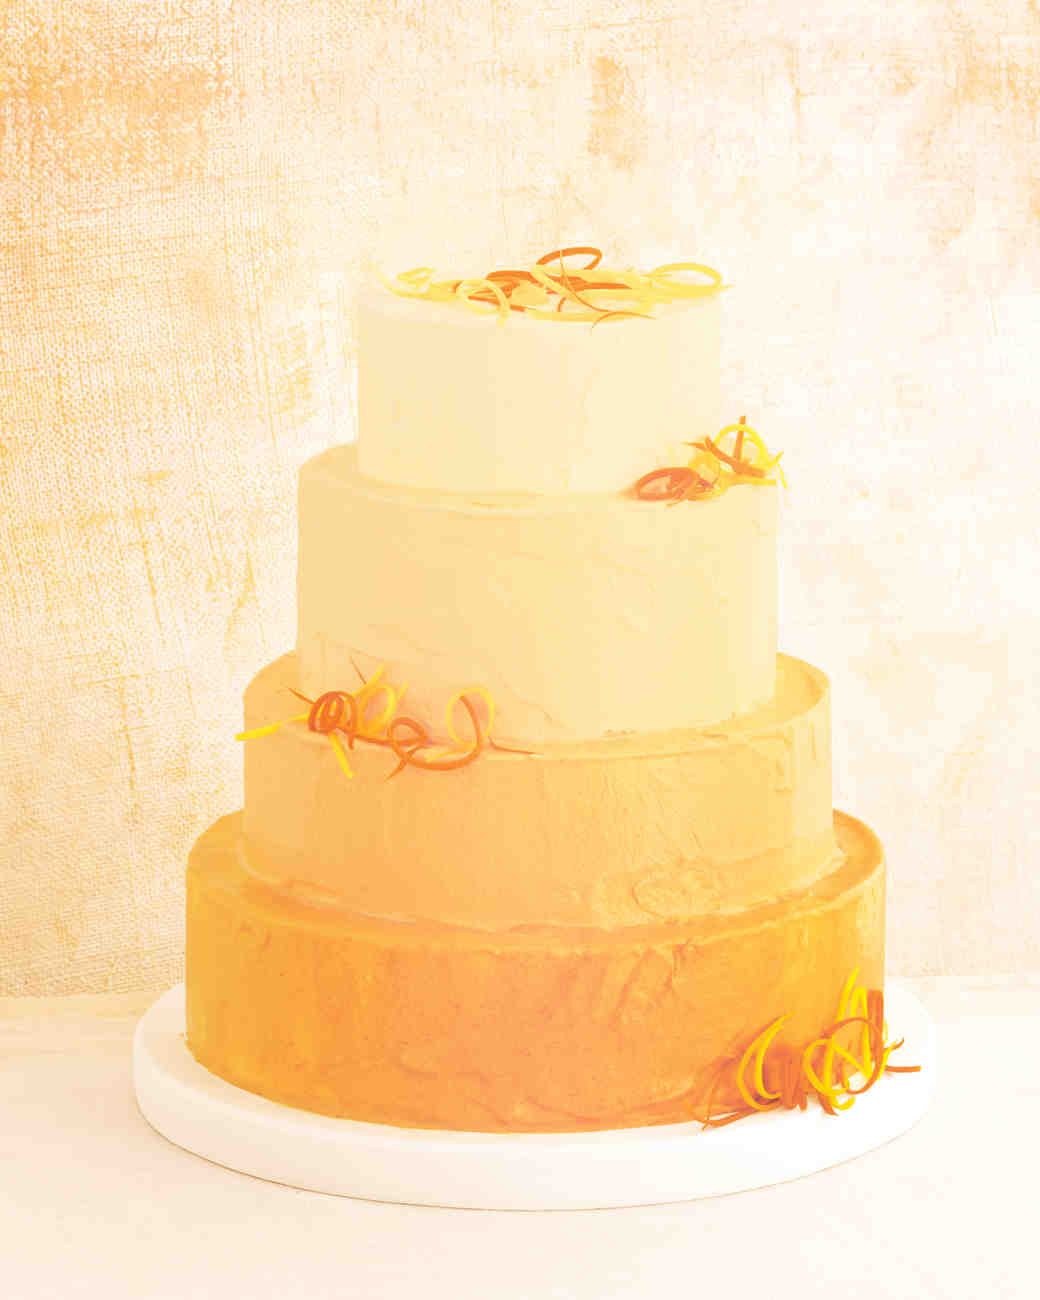 wedding-cake-carrot-051-d111828.jpg